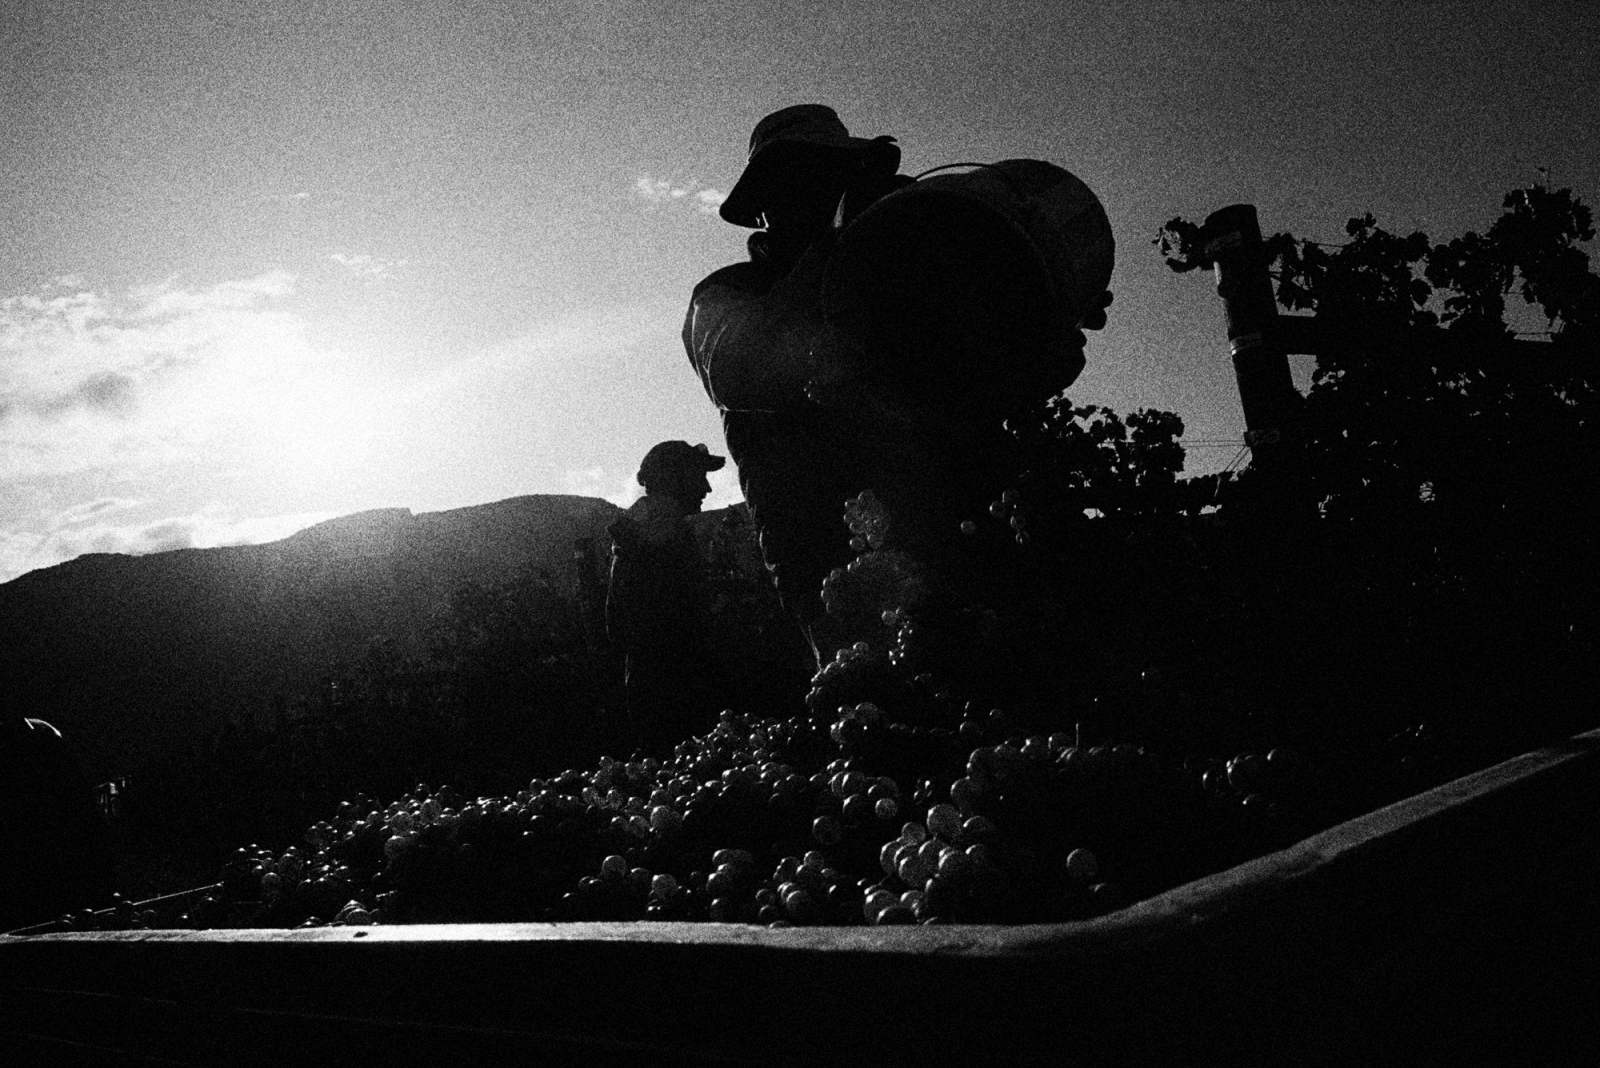 Mexican agricultural workers pick grapes on the fertile lands near Grand Junction, Colorado. Seasonal workers migrate the thousands of miles from Mexico to Colorado every year to pick the grapes that create the region's wines.